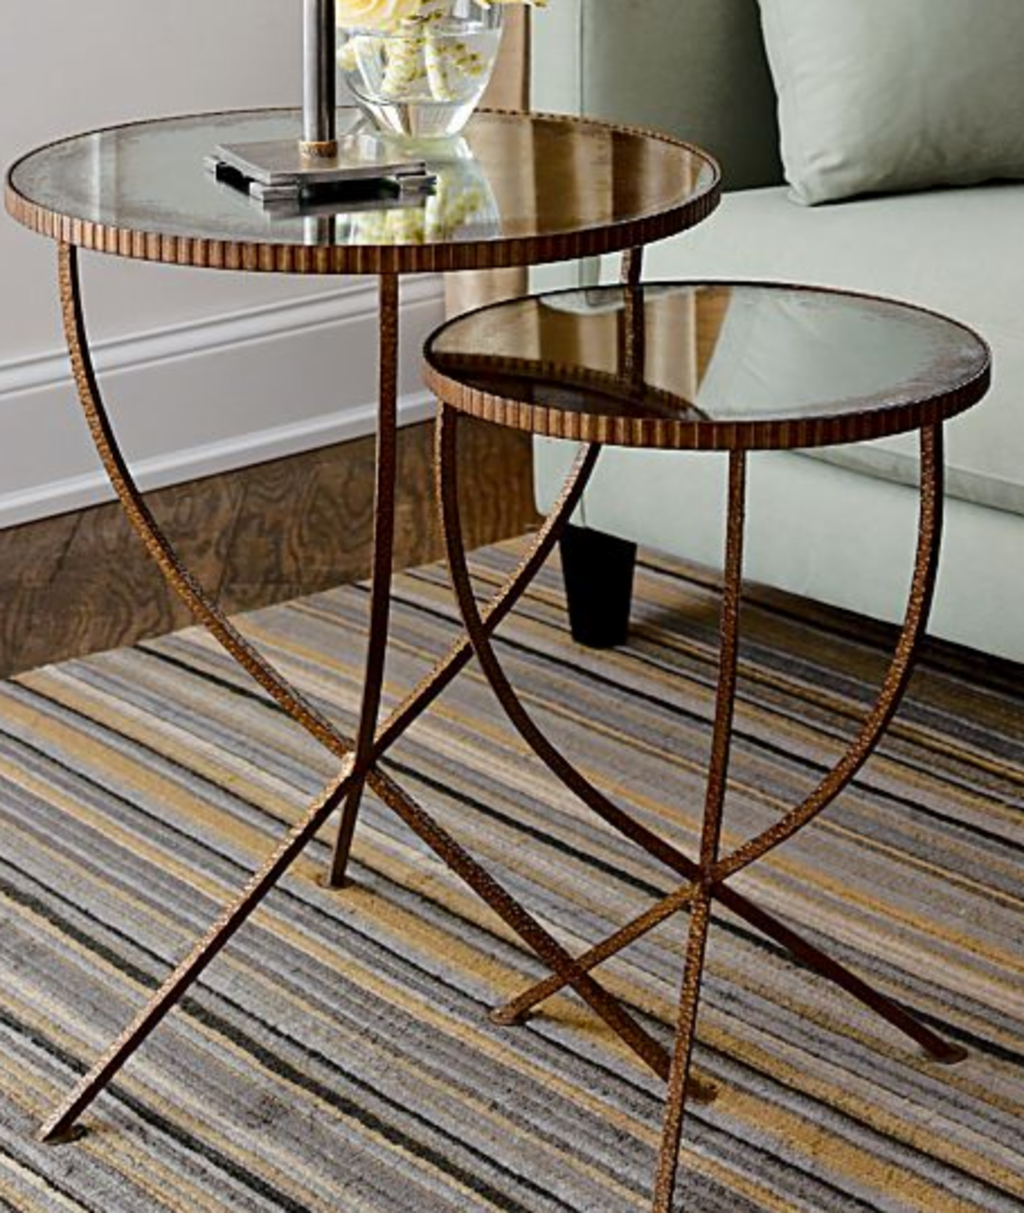 round nesting tables apartment therapy jules small accent table pottery barn trestle dining low outdoor bar height patio shade umbrella coffee set farm concrete side kohls floor